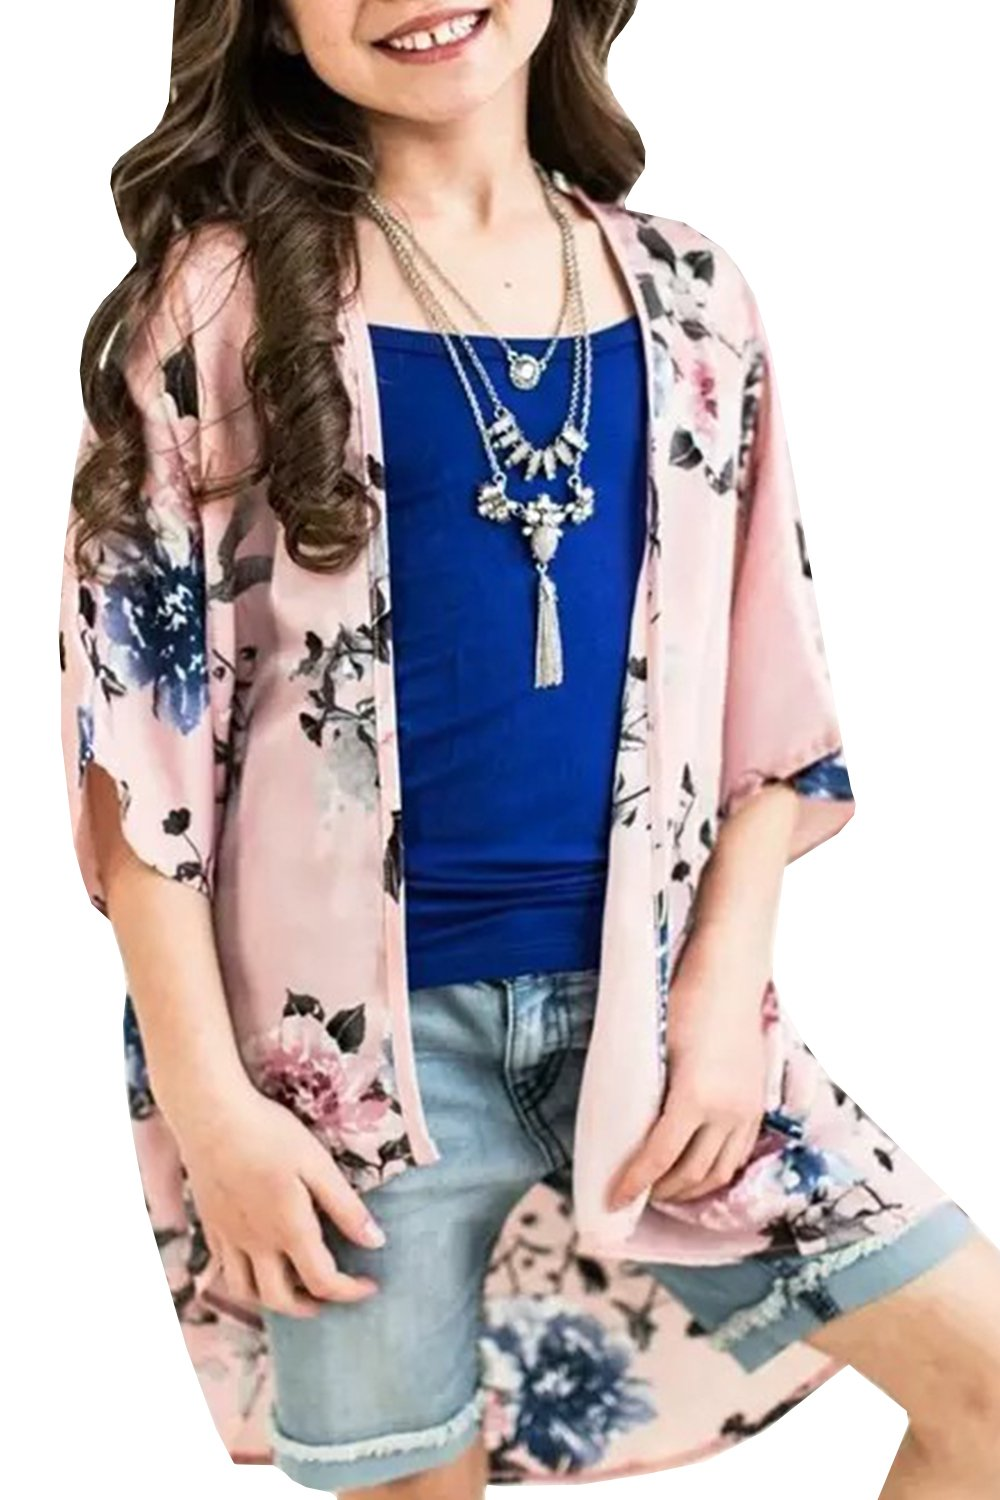 52f8292ab Galleon - Geckatte Girls Boho Floral Kimono Cardigan Capes Summer Batwing  Sheer Cover Up Blouse Tops